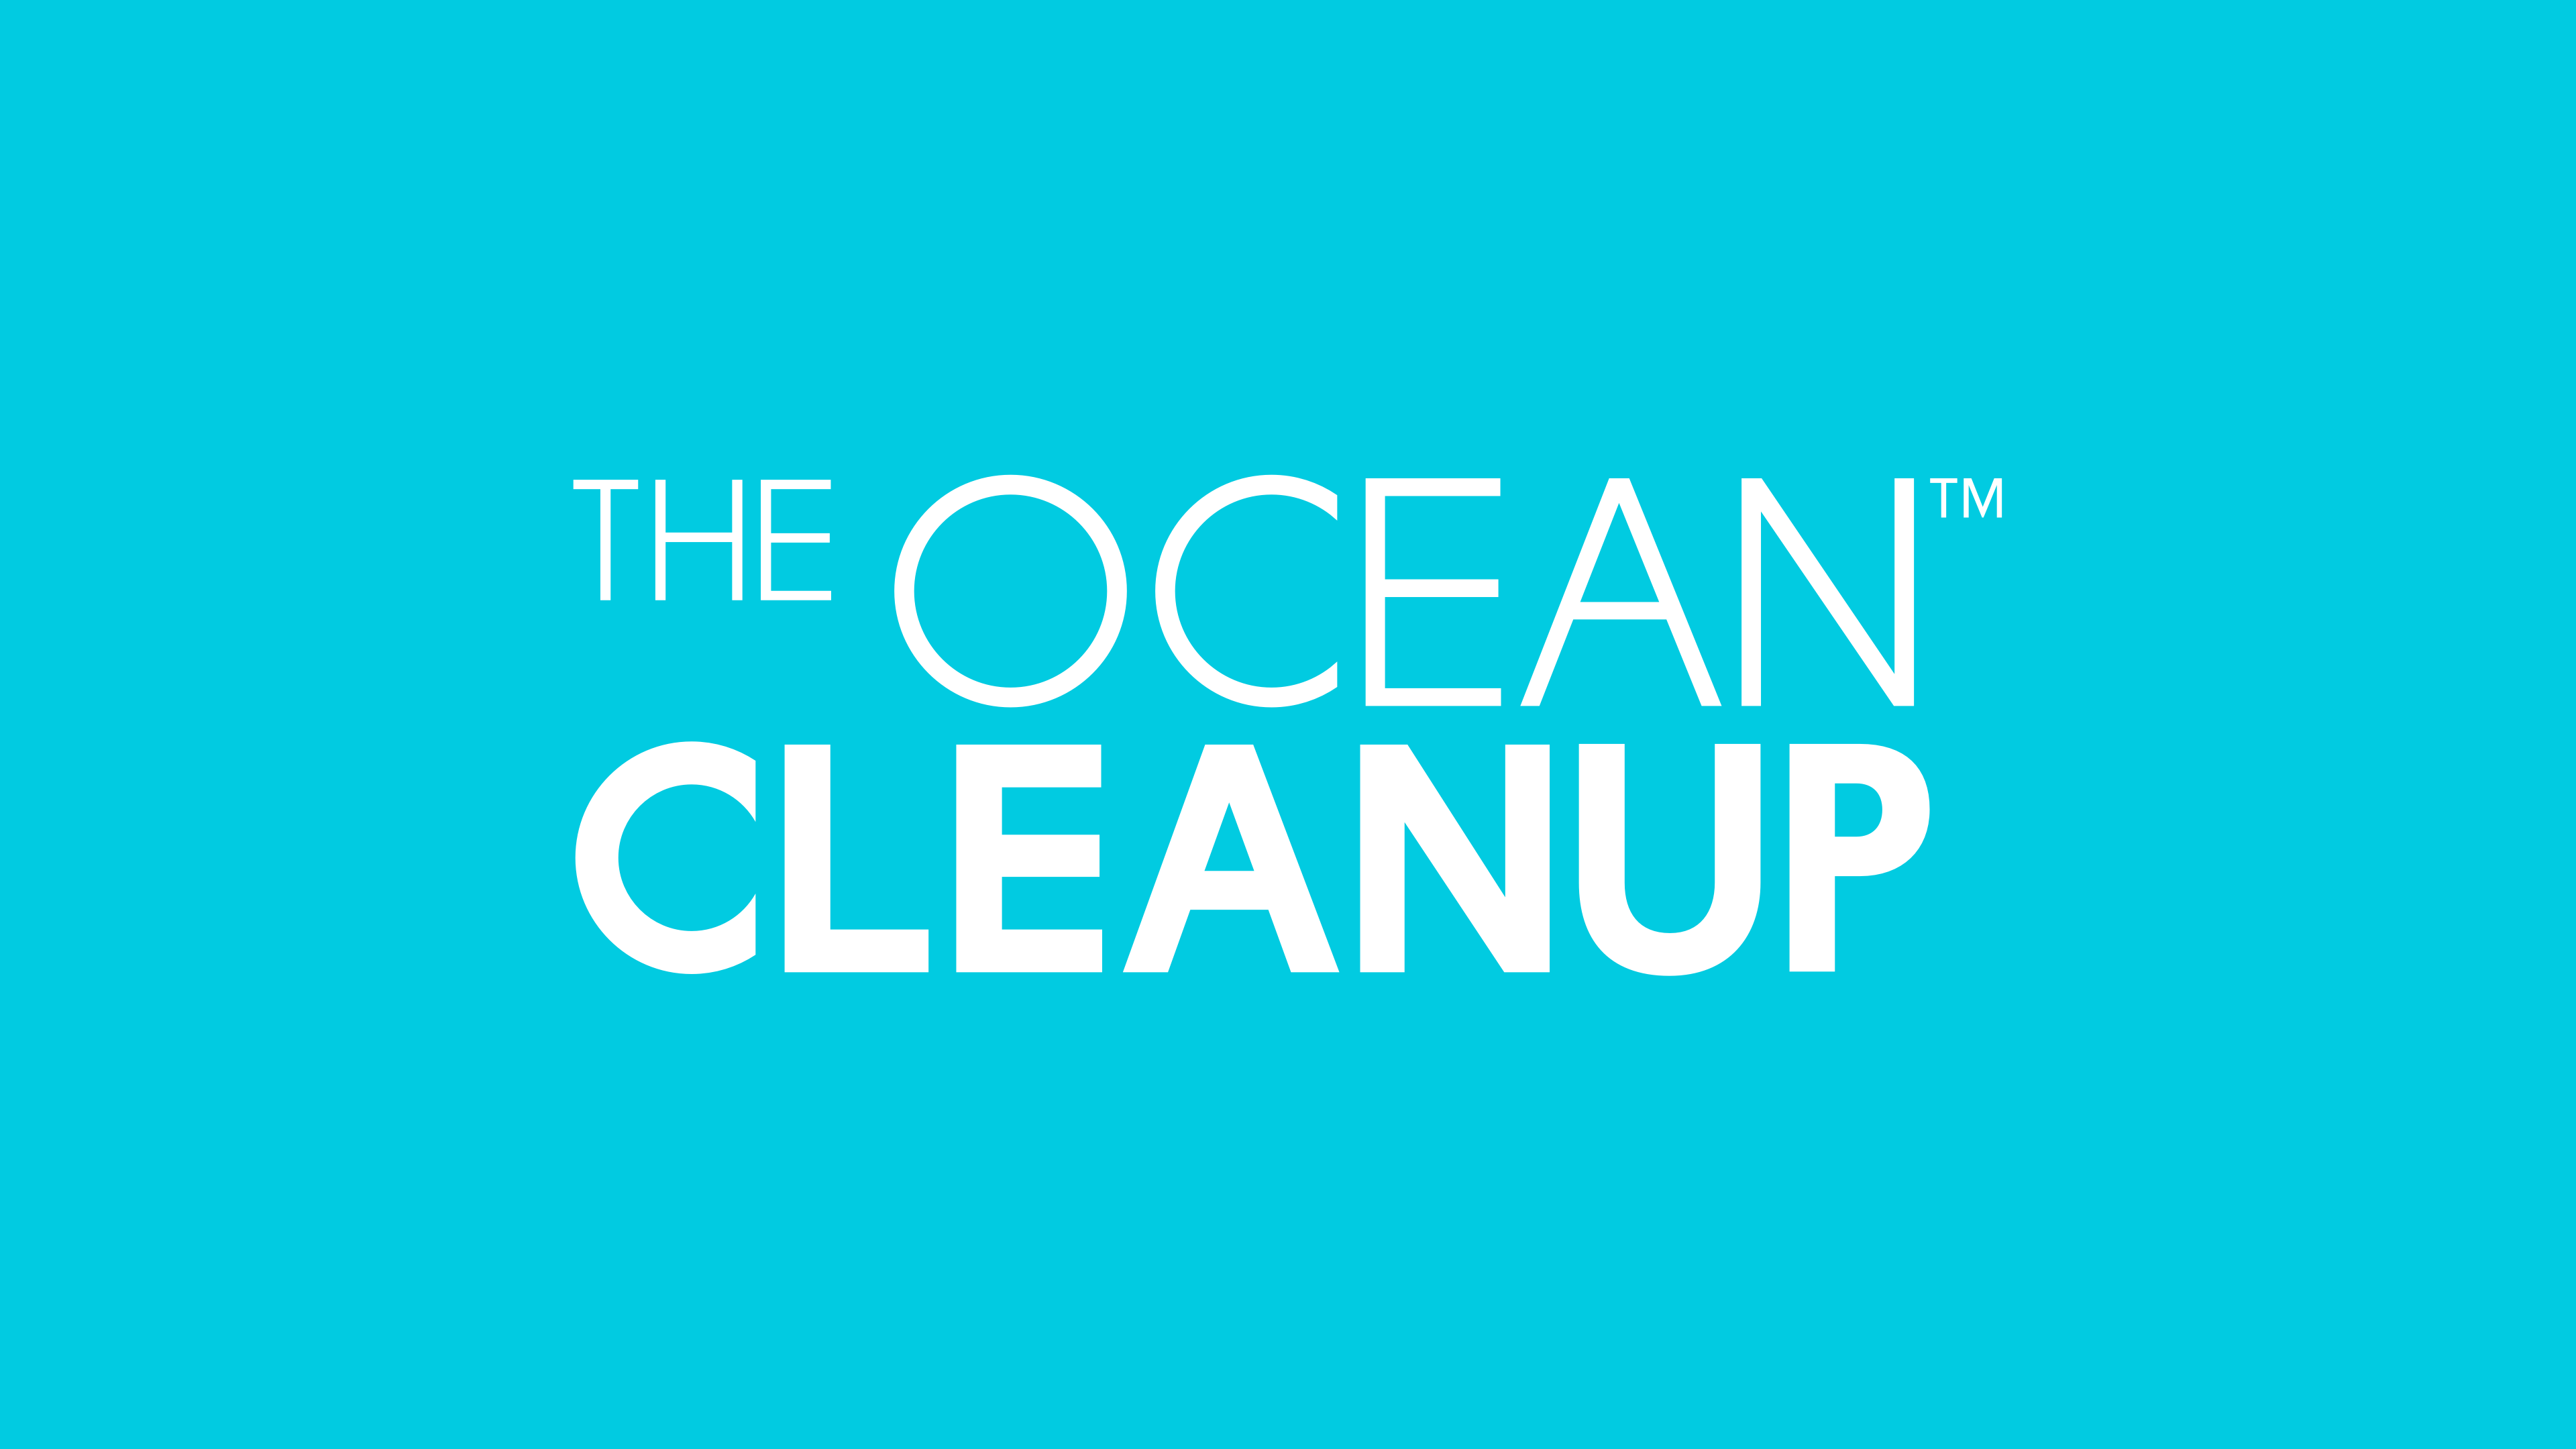 oceancleanup.png